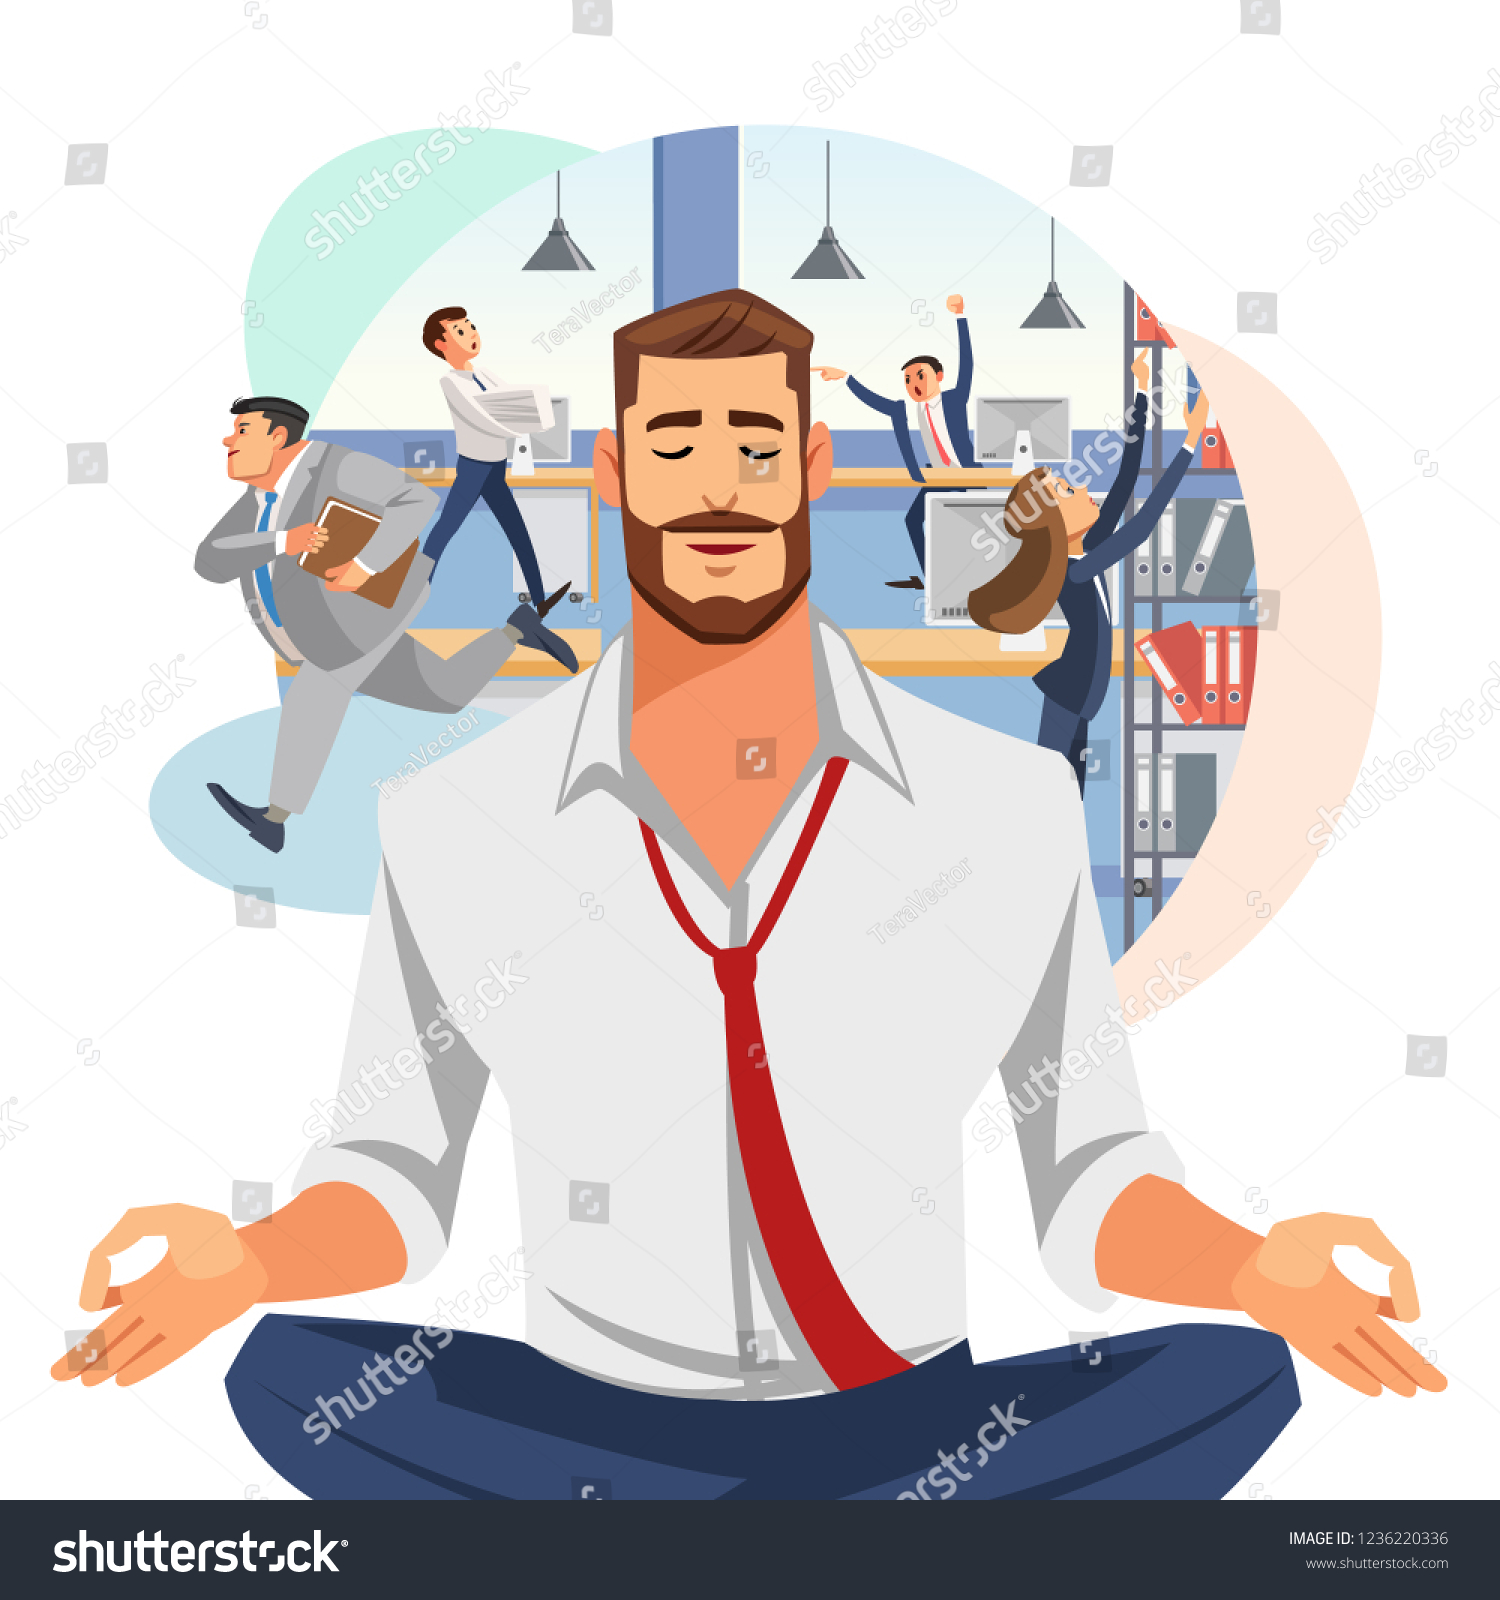 Relaxing Stress Relief Workplace Cartoon Vector Stock Vector Royalty Free 1236220336